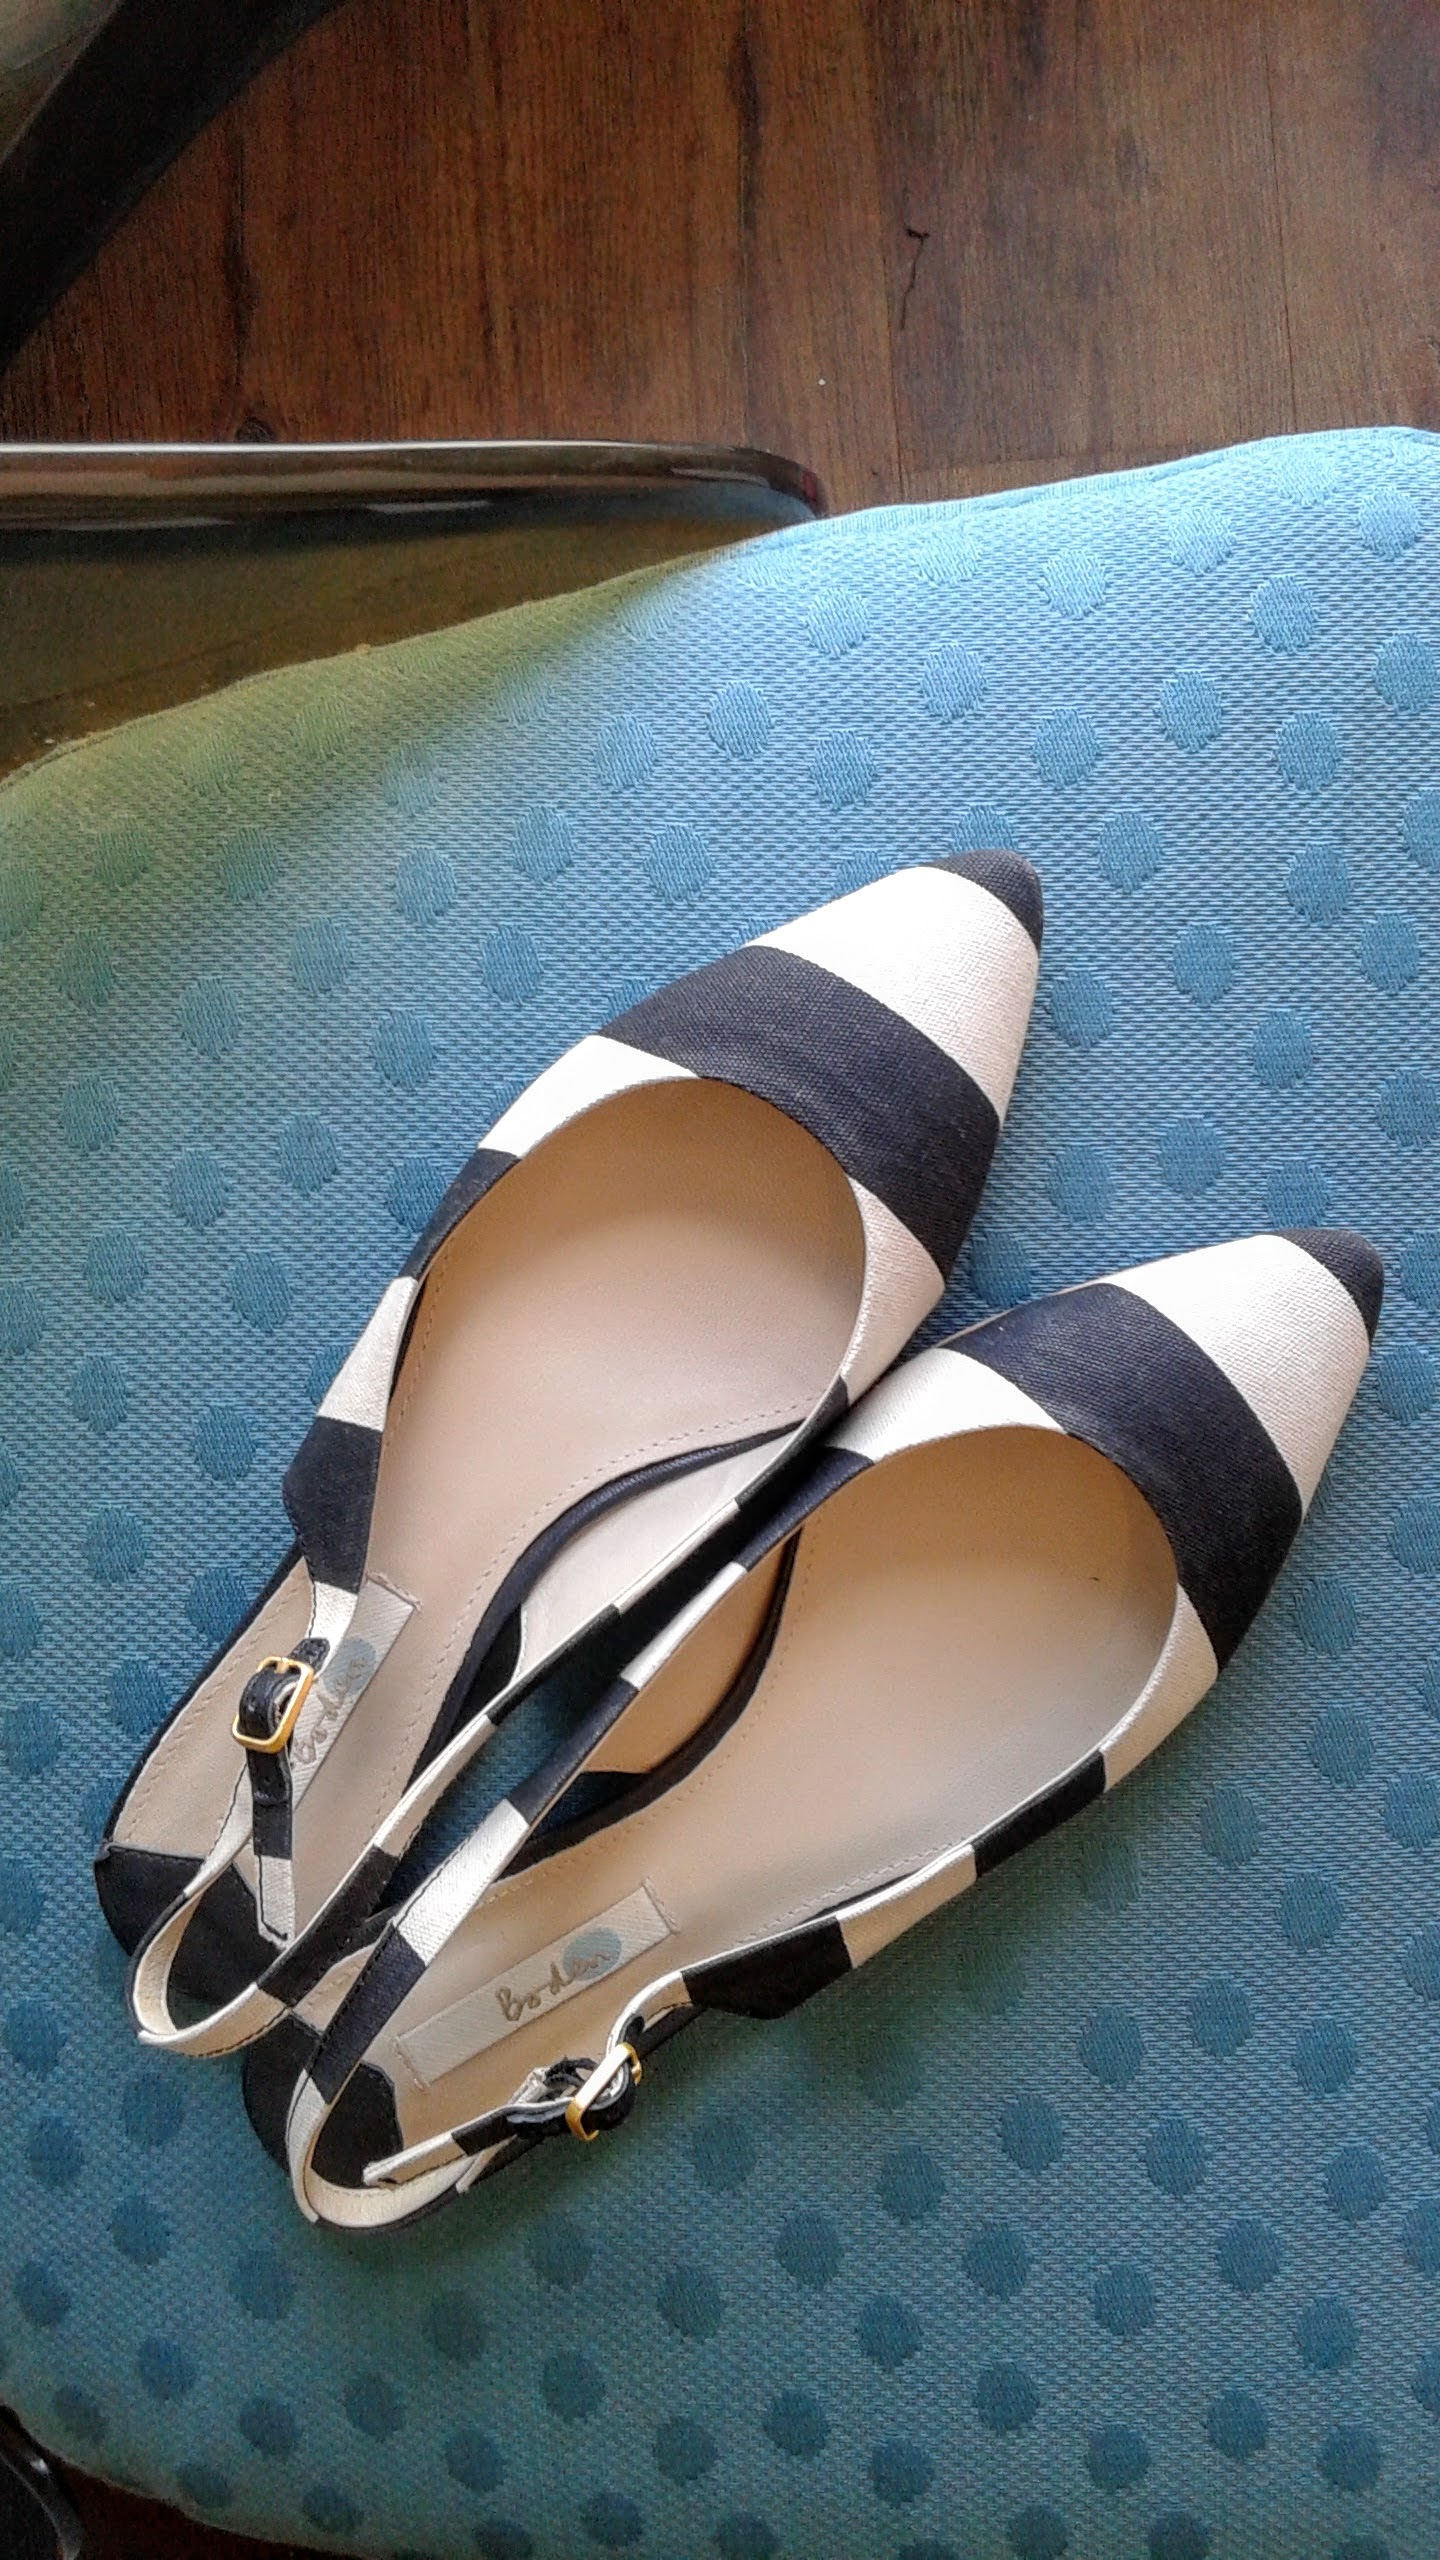 Boden shoes; S9.5, $26